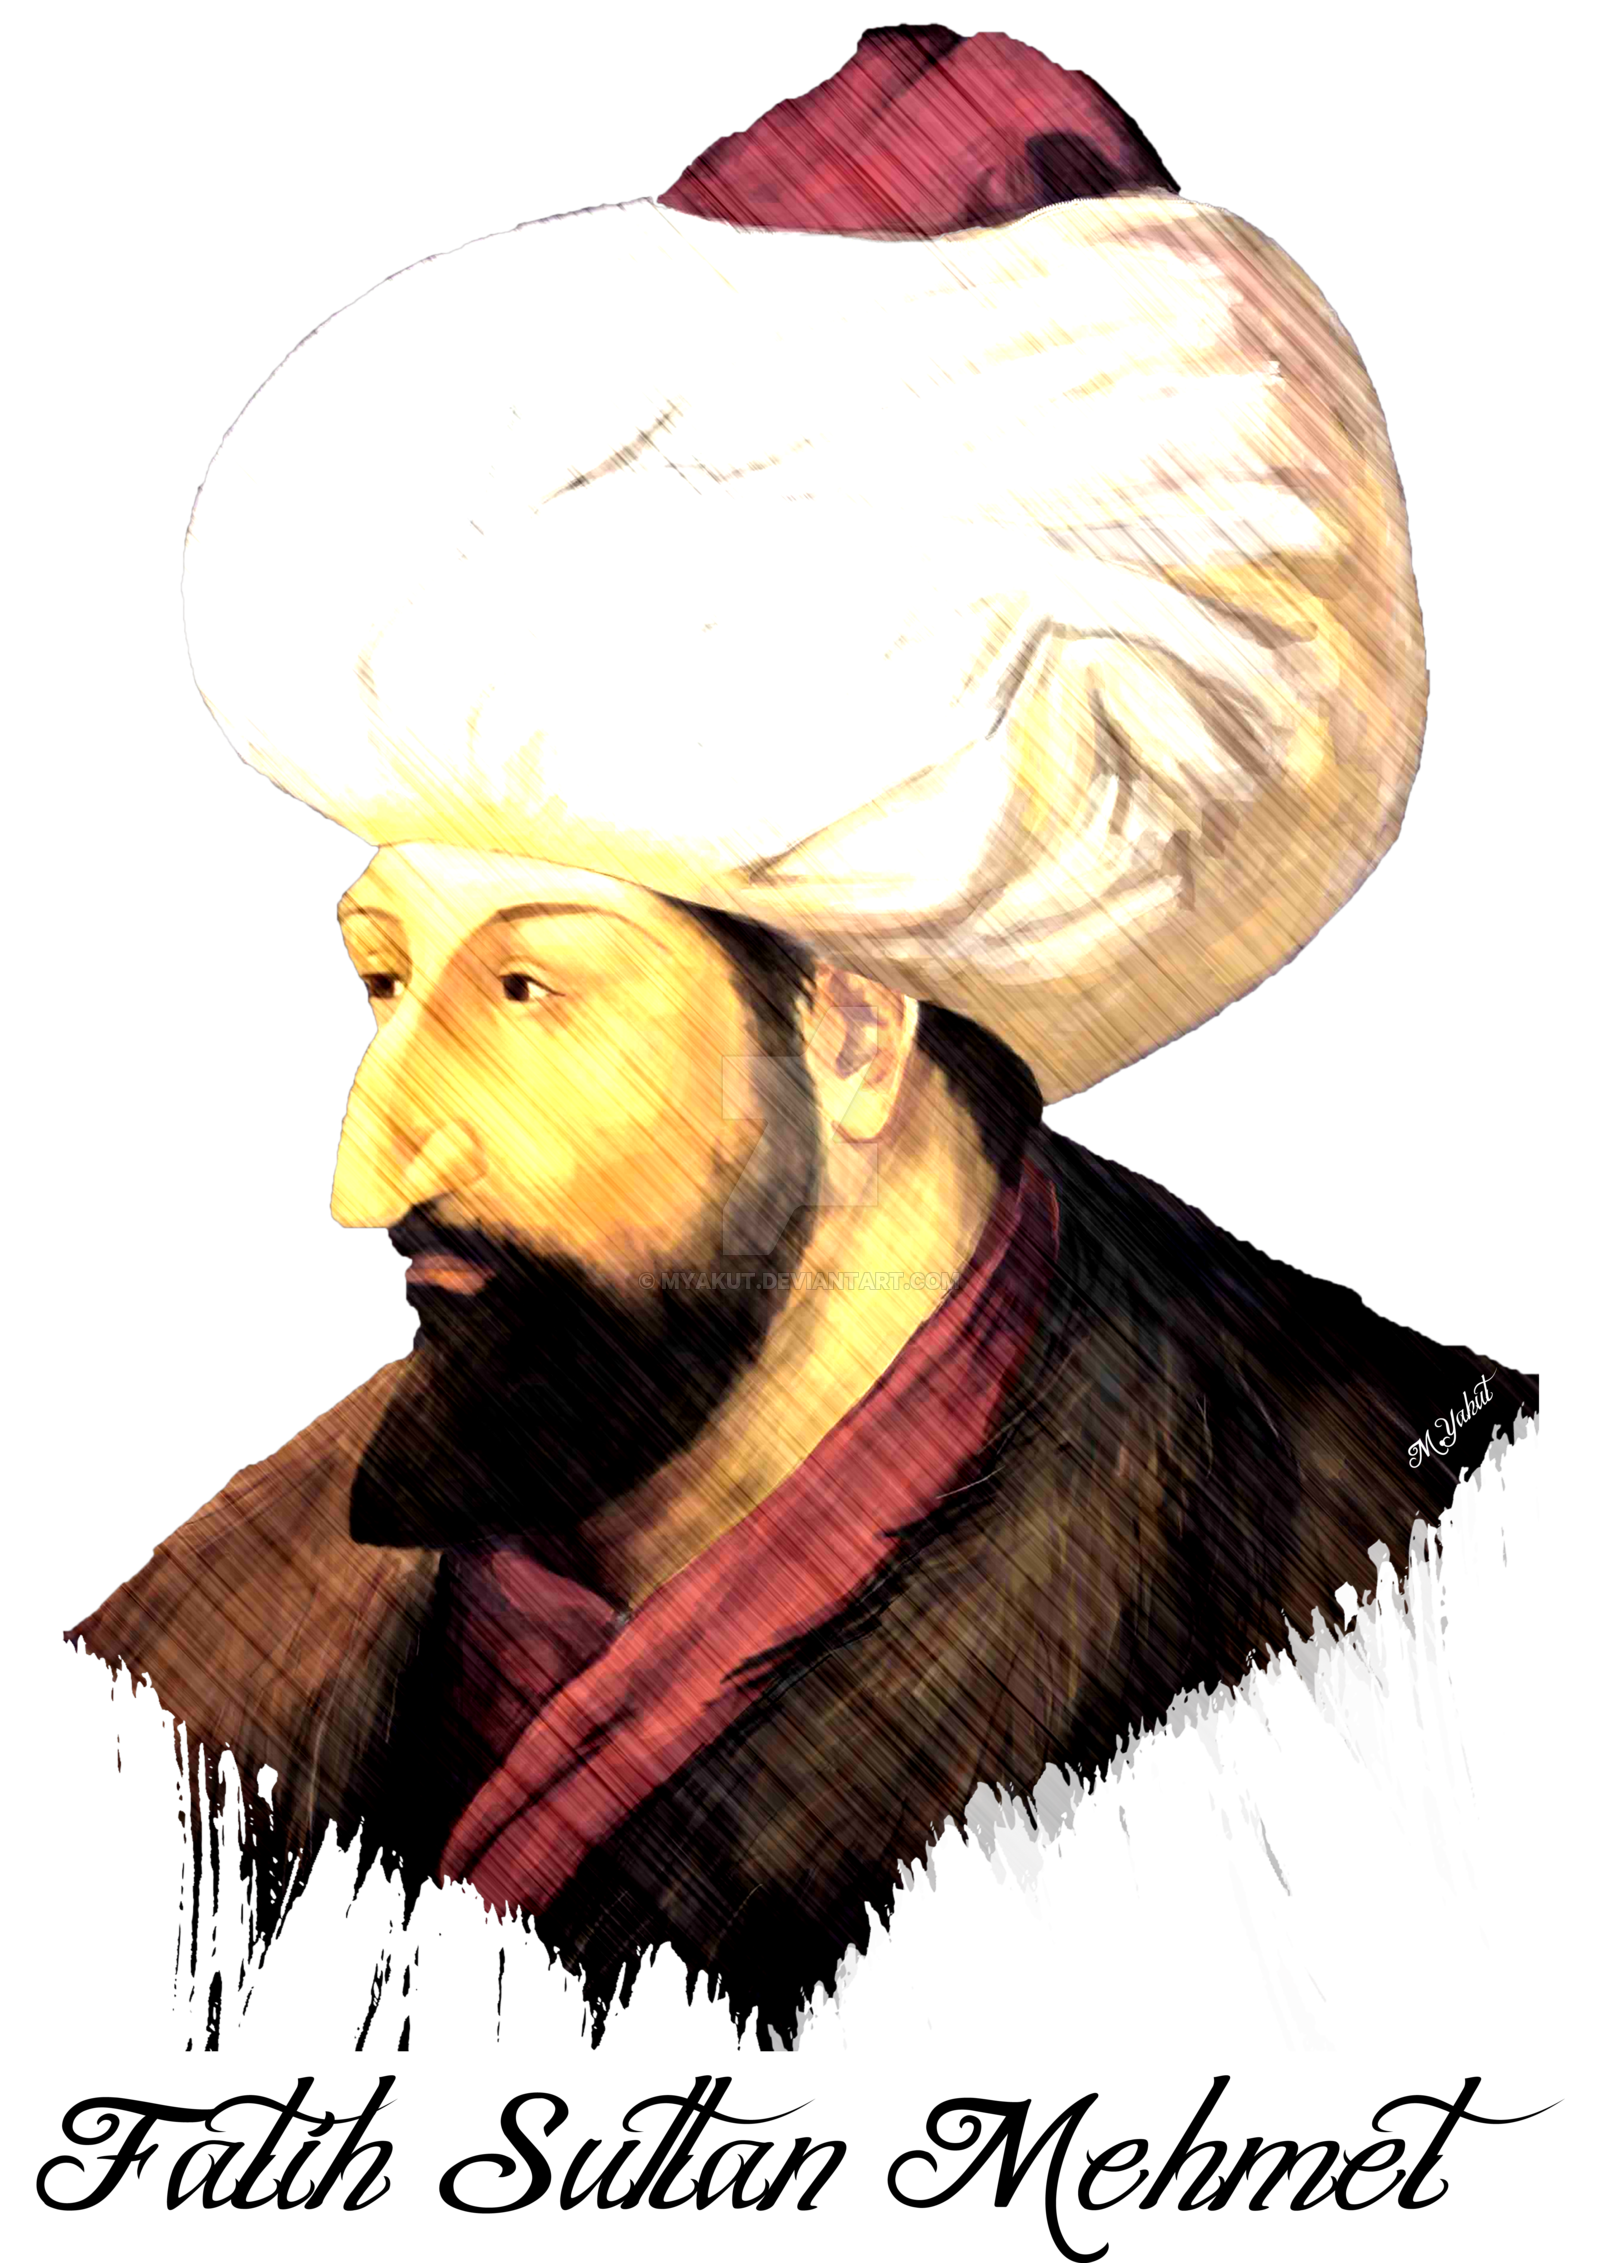 Fatih Sultan Mehmet by myakut on DeviantArt.